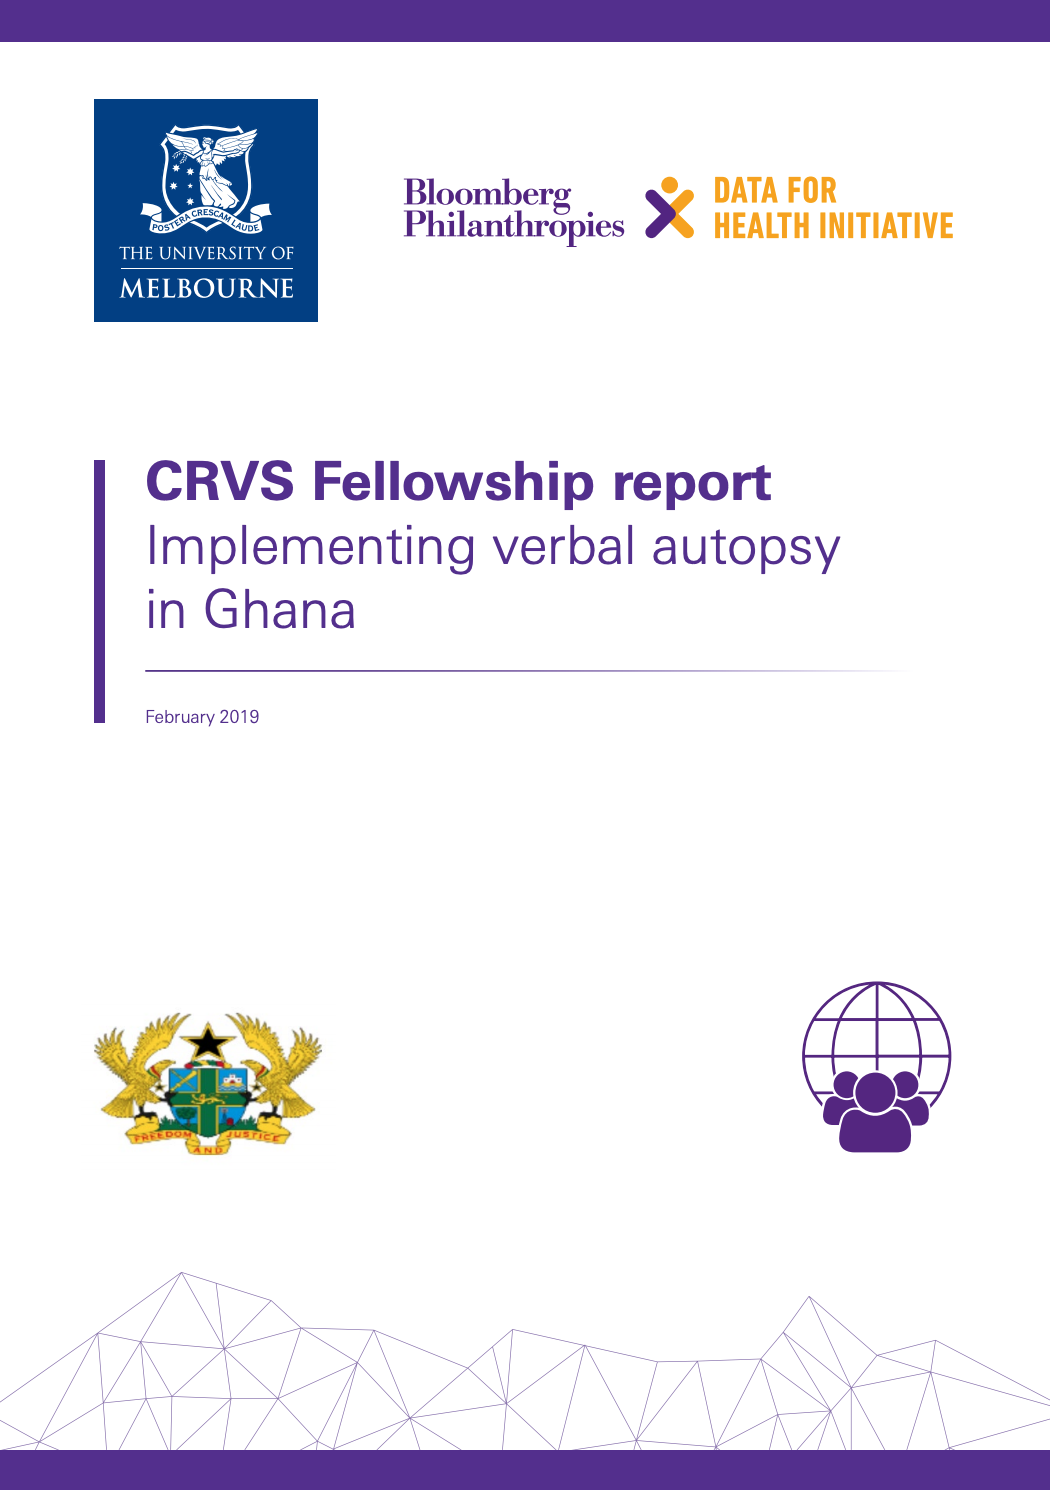 CRVS Fellowship profile